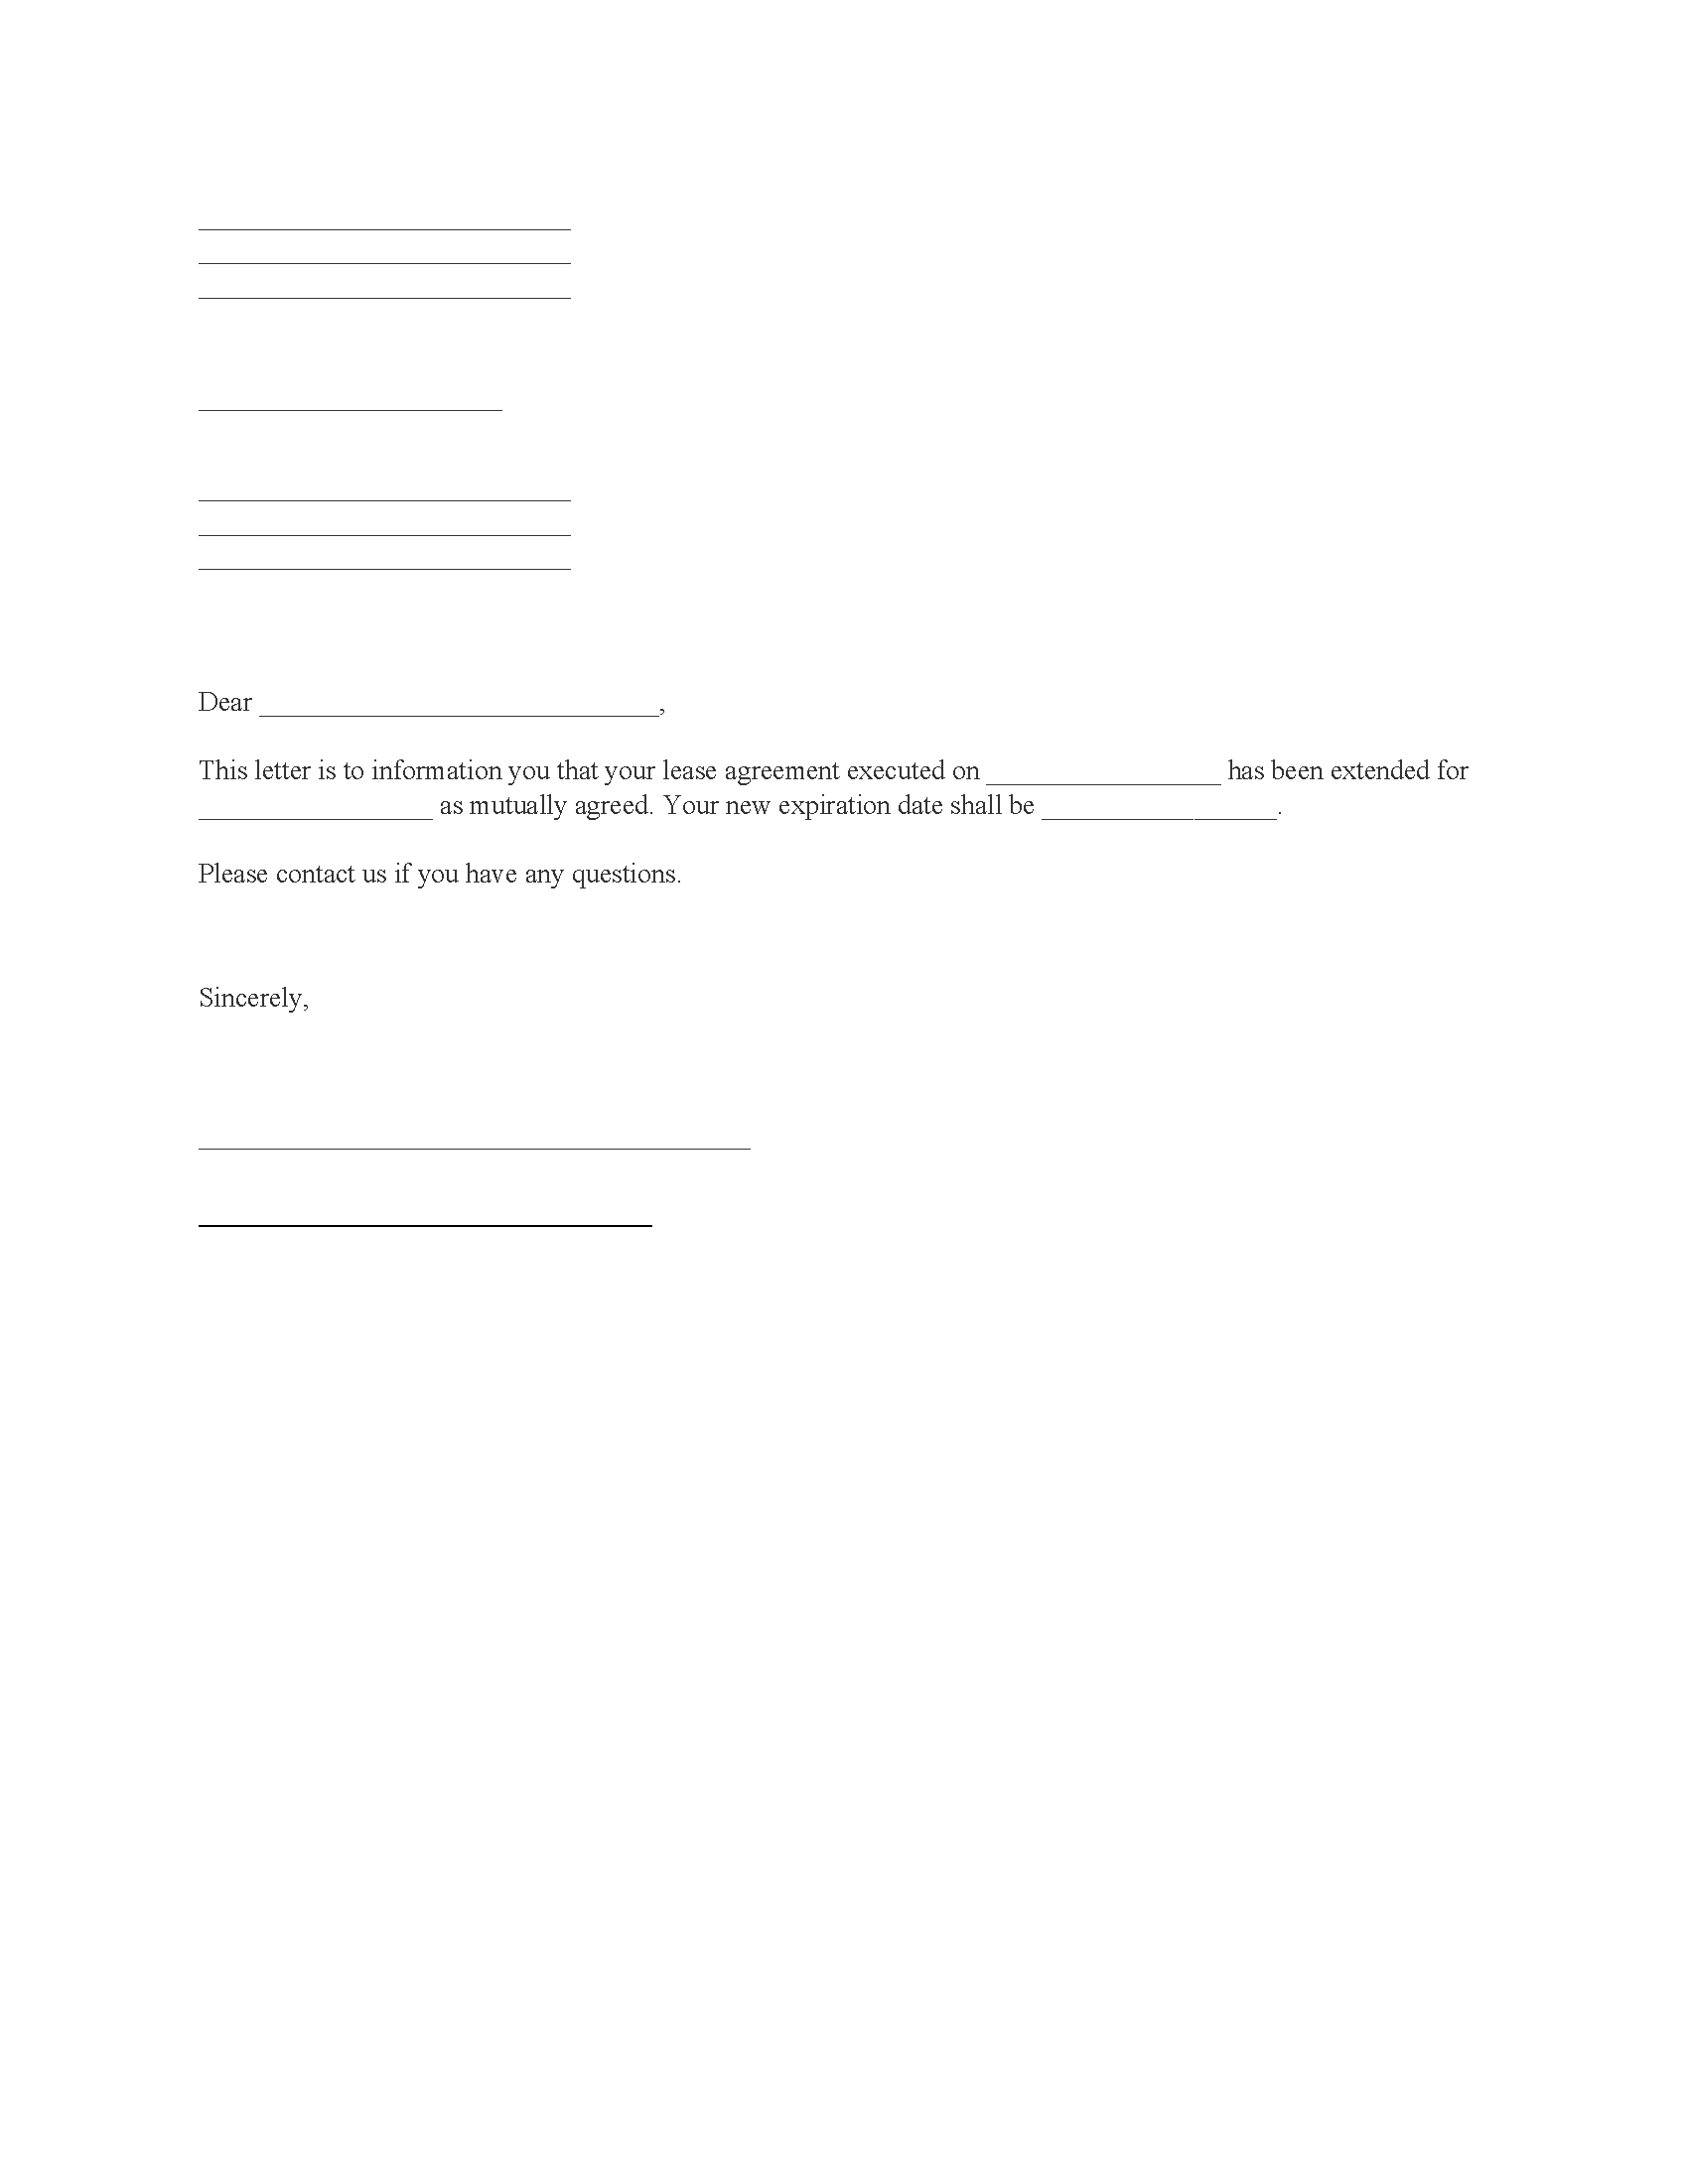 Lease Extension Agreement